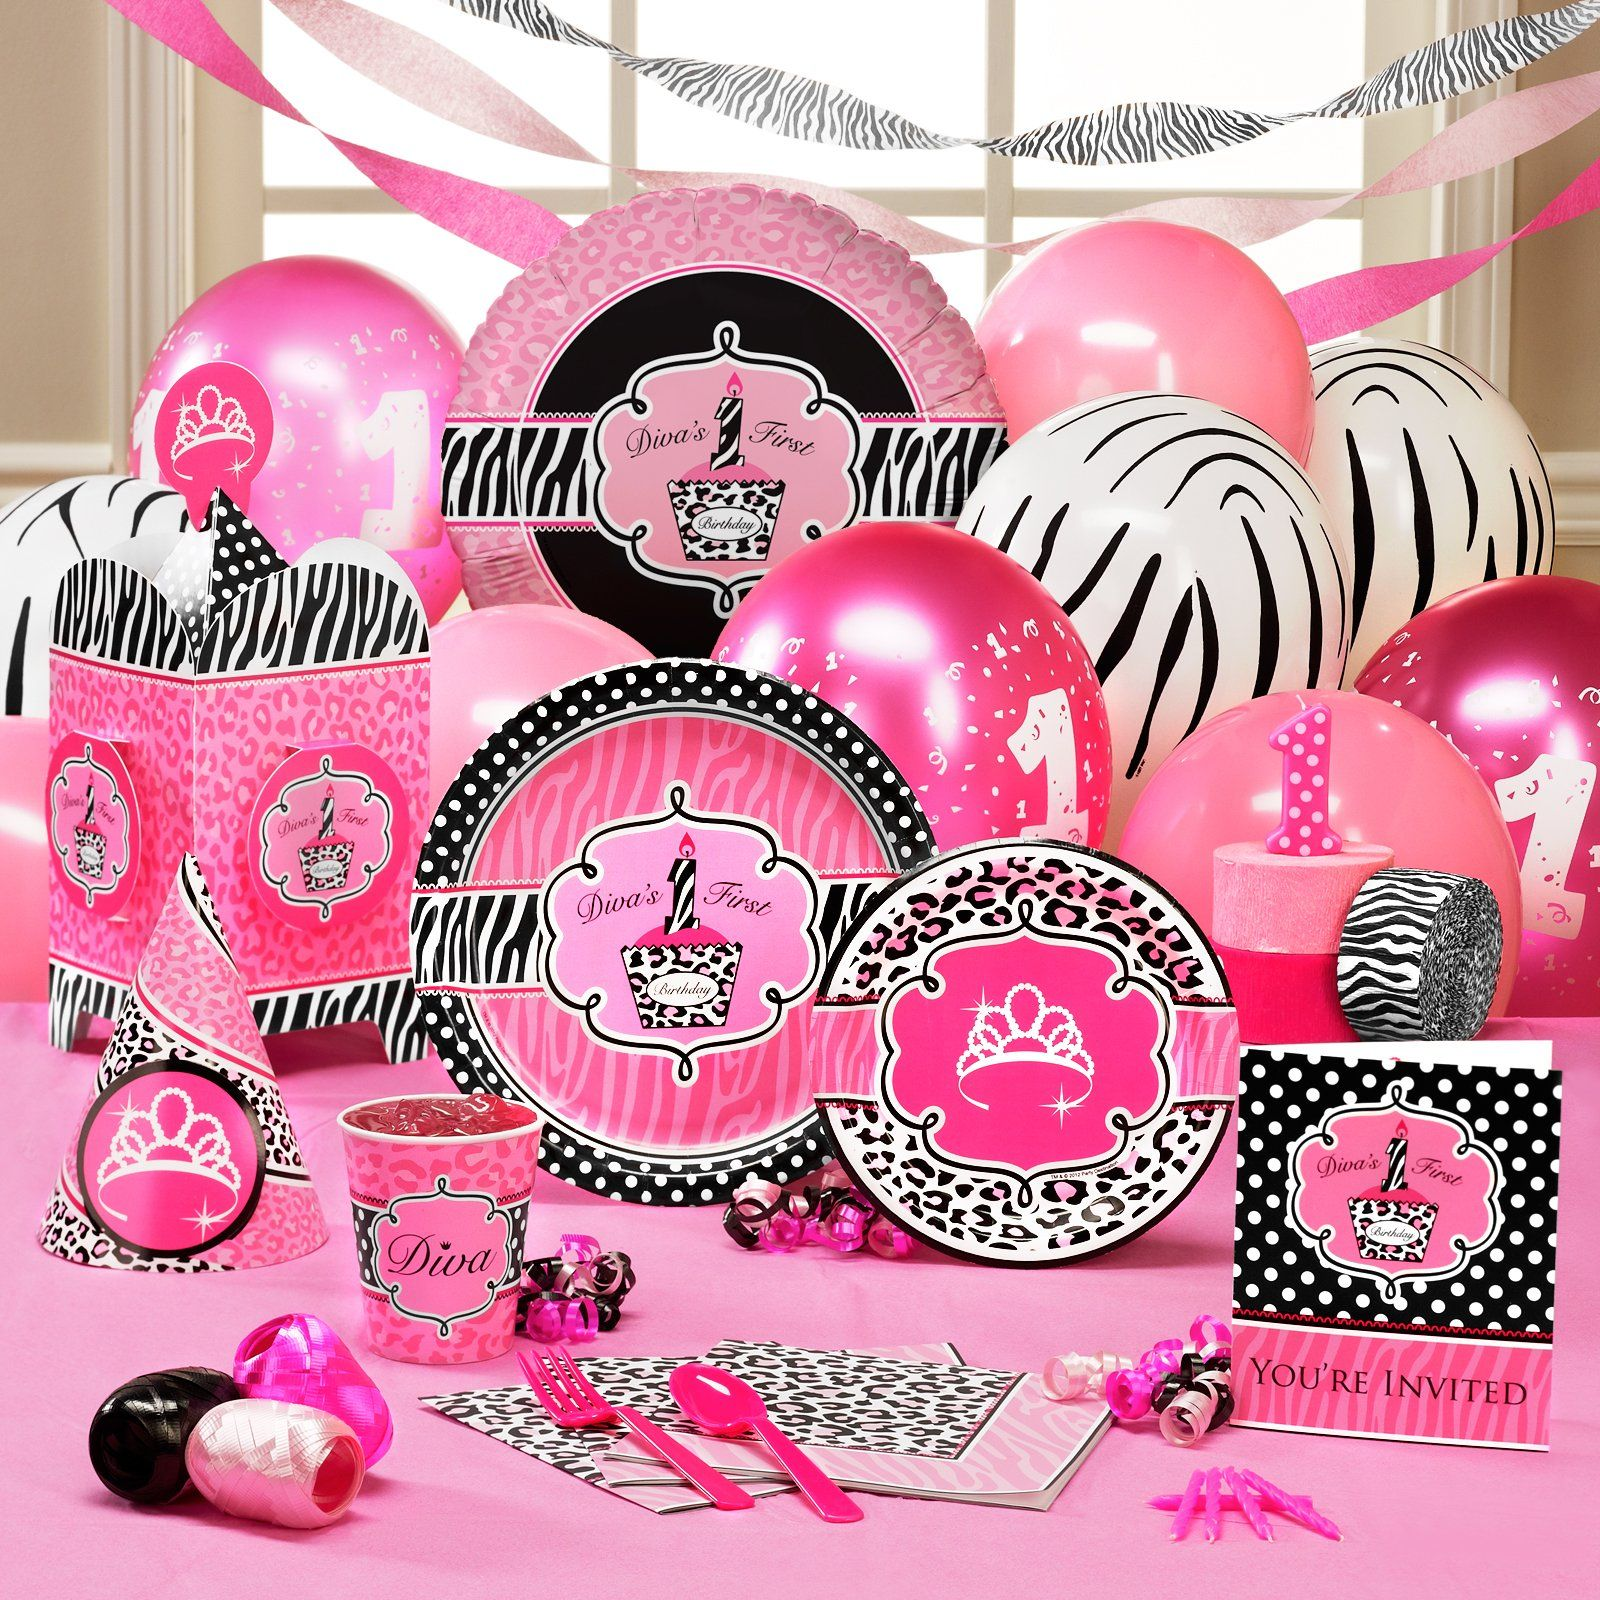 Ardyns party pack for her 1st bday I love the hot pink and zebra